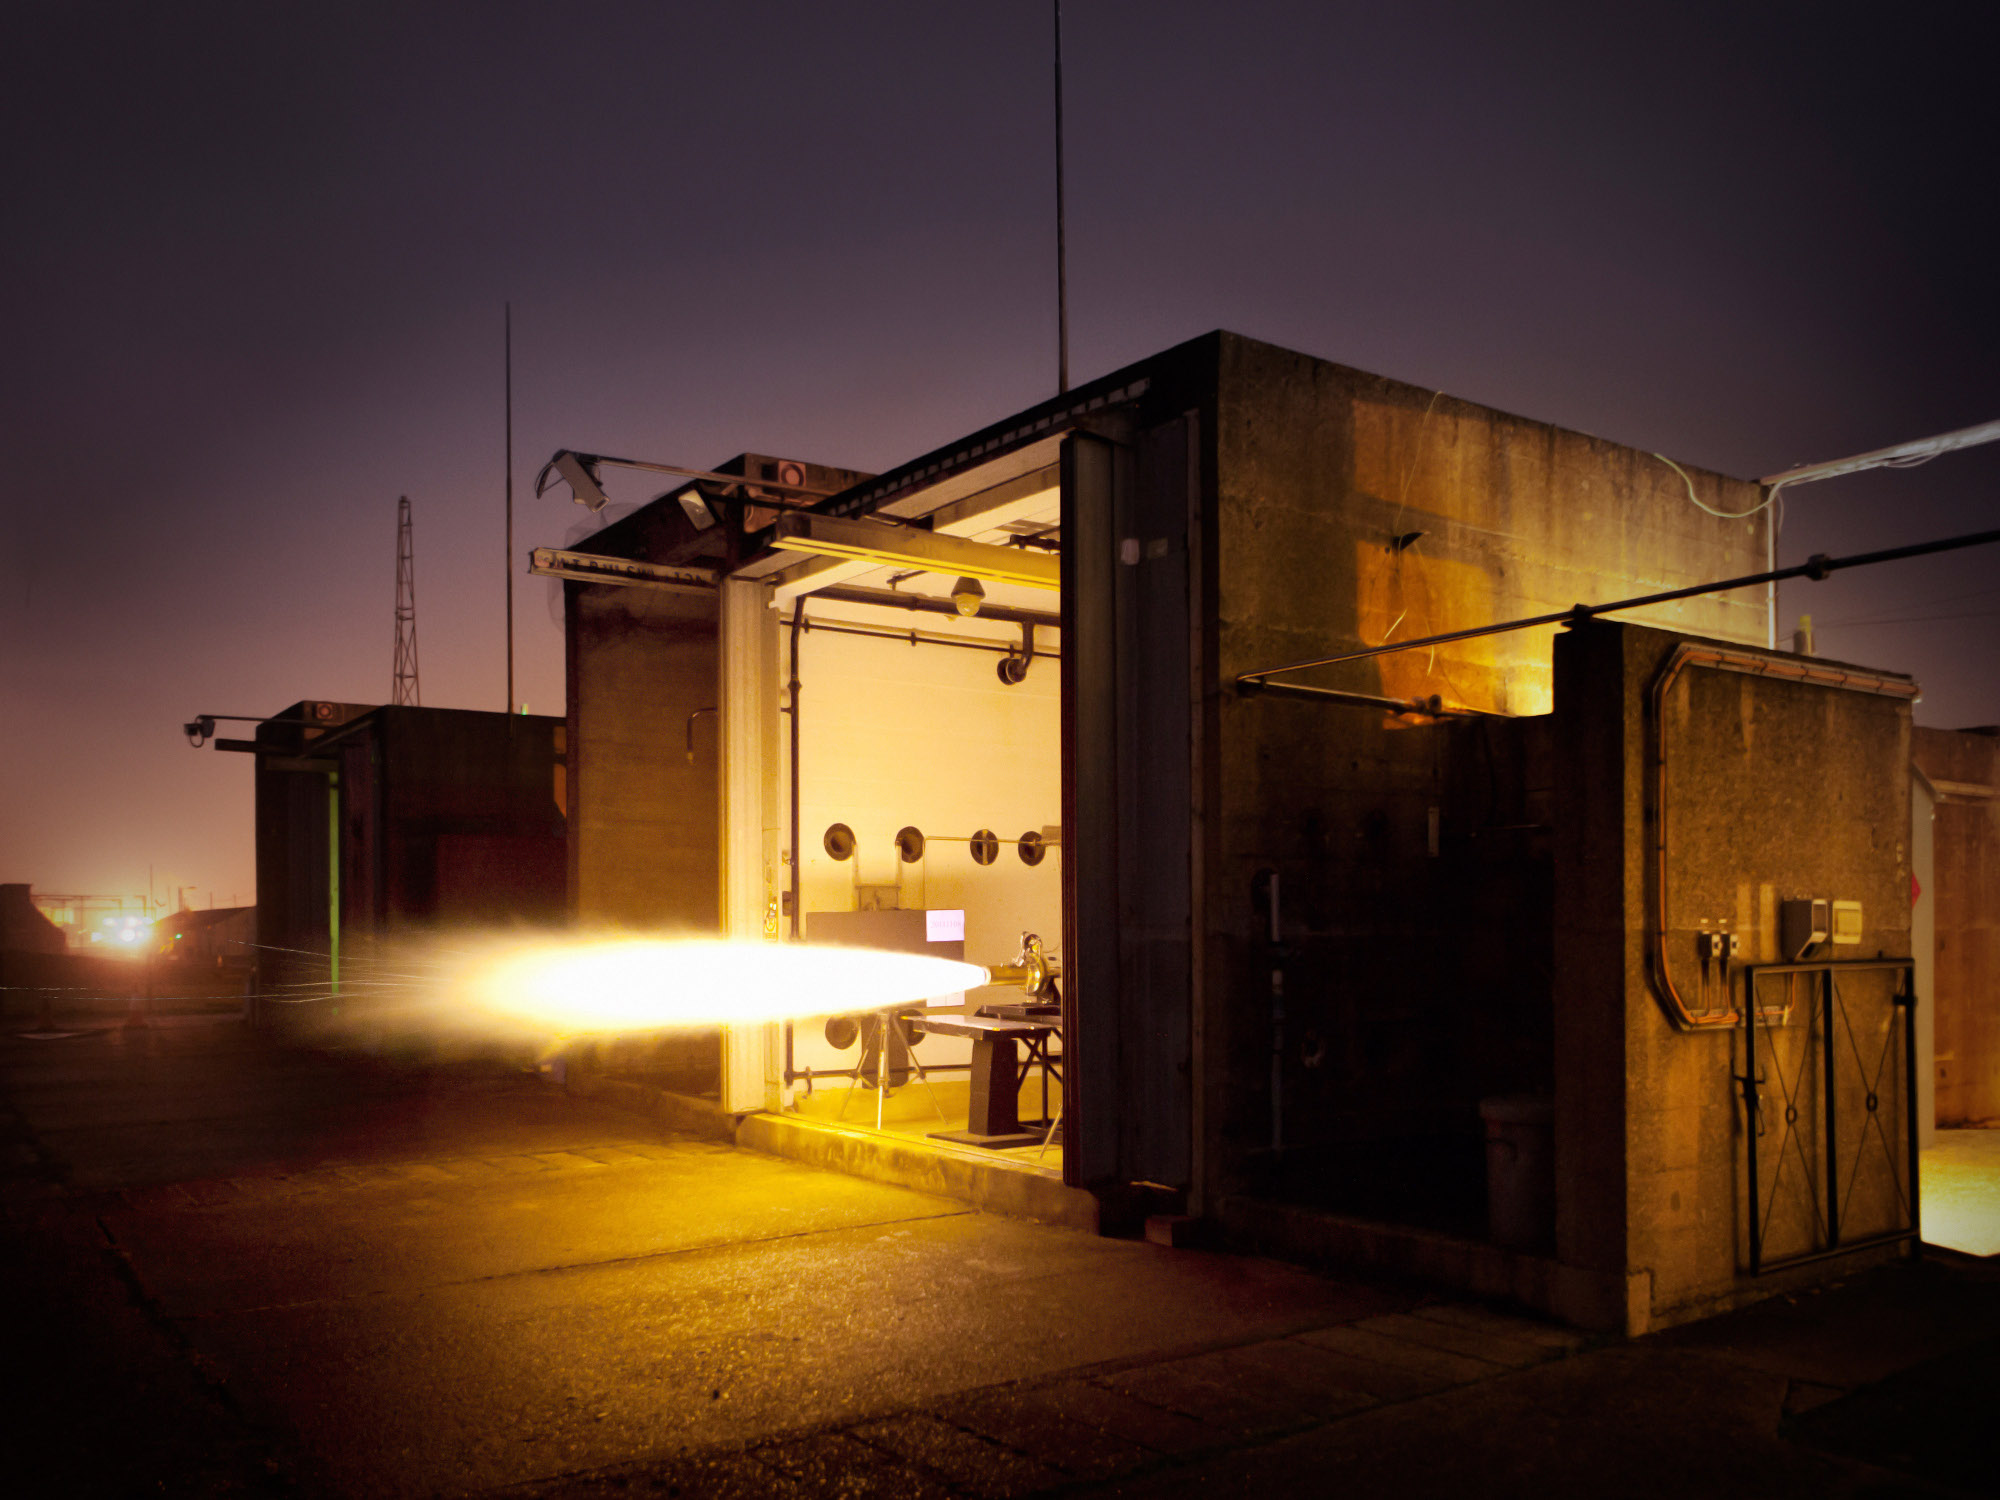 Image of test bay firing